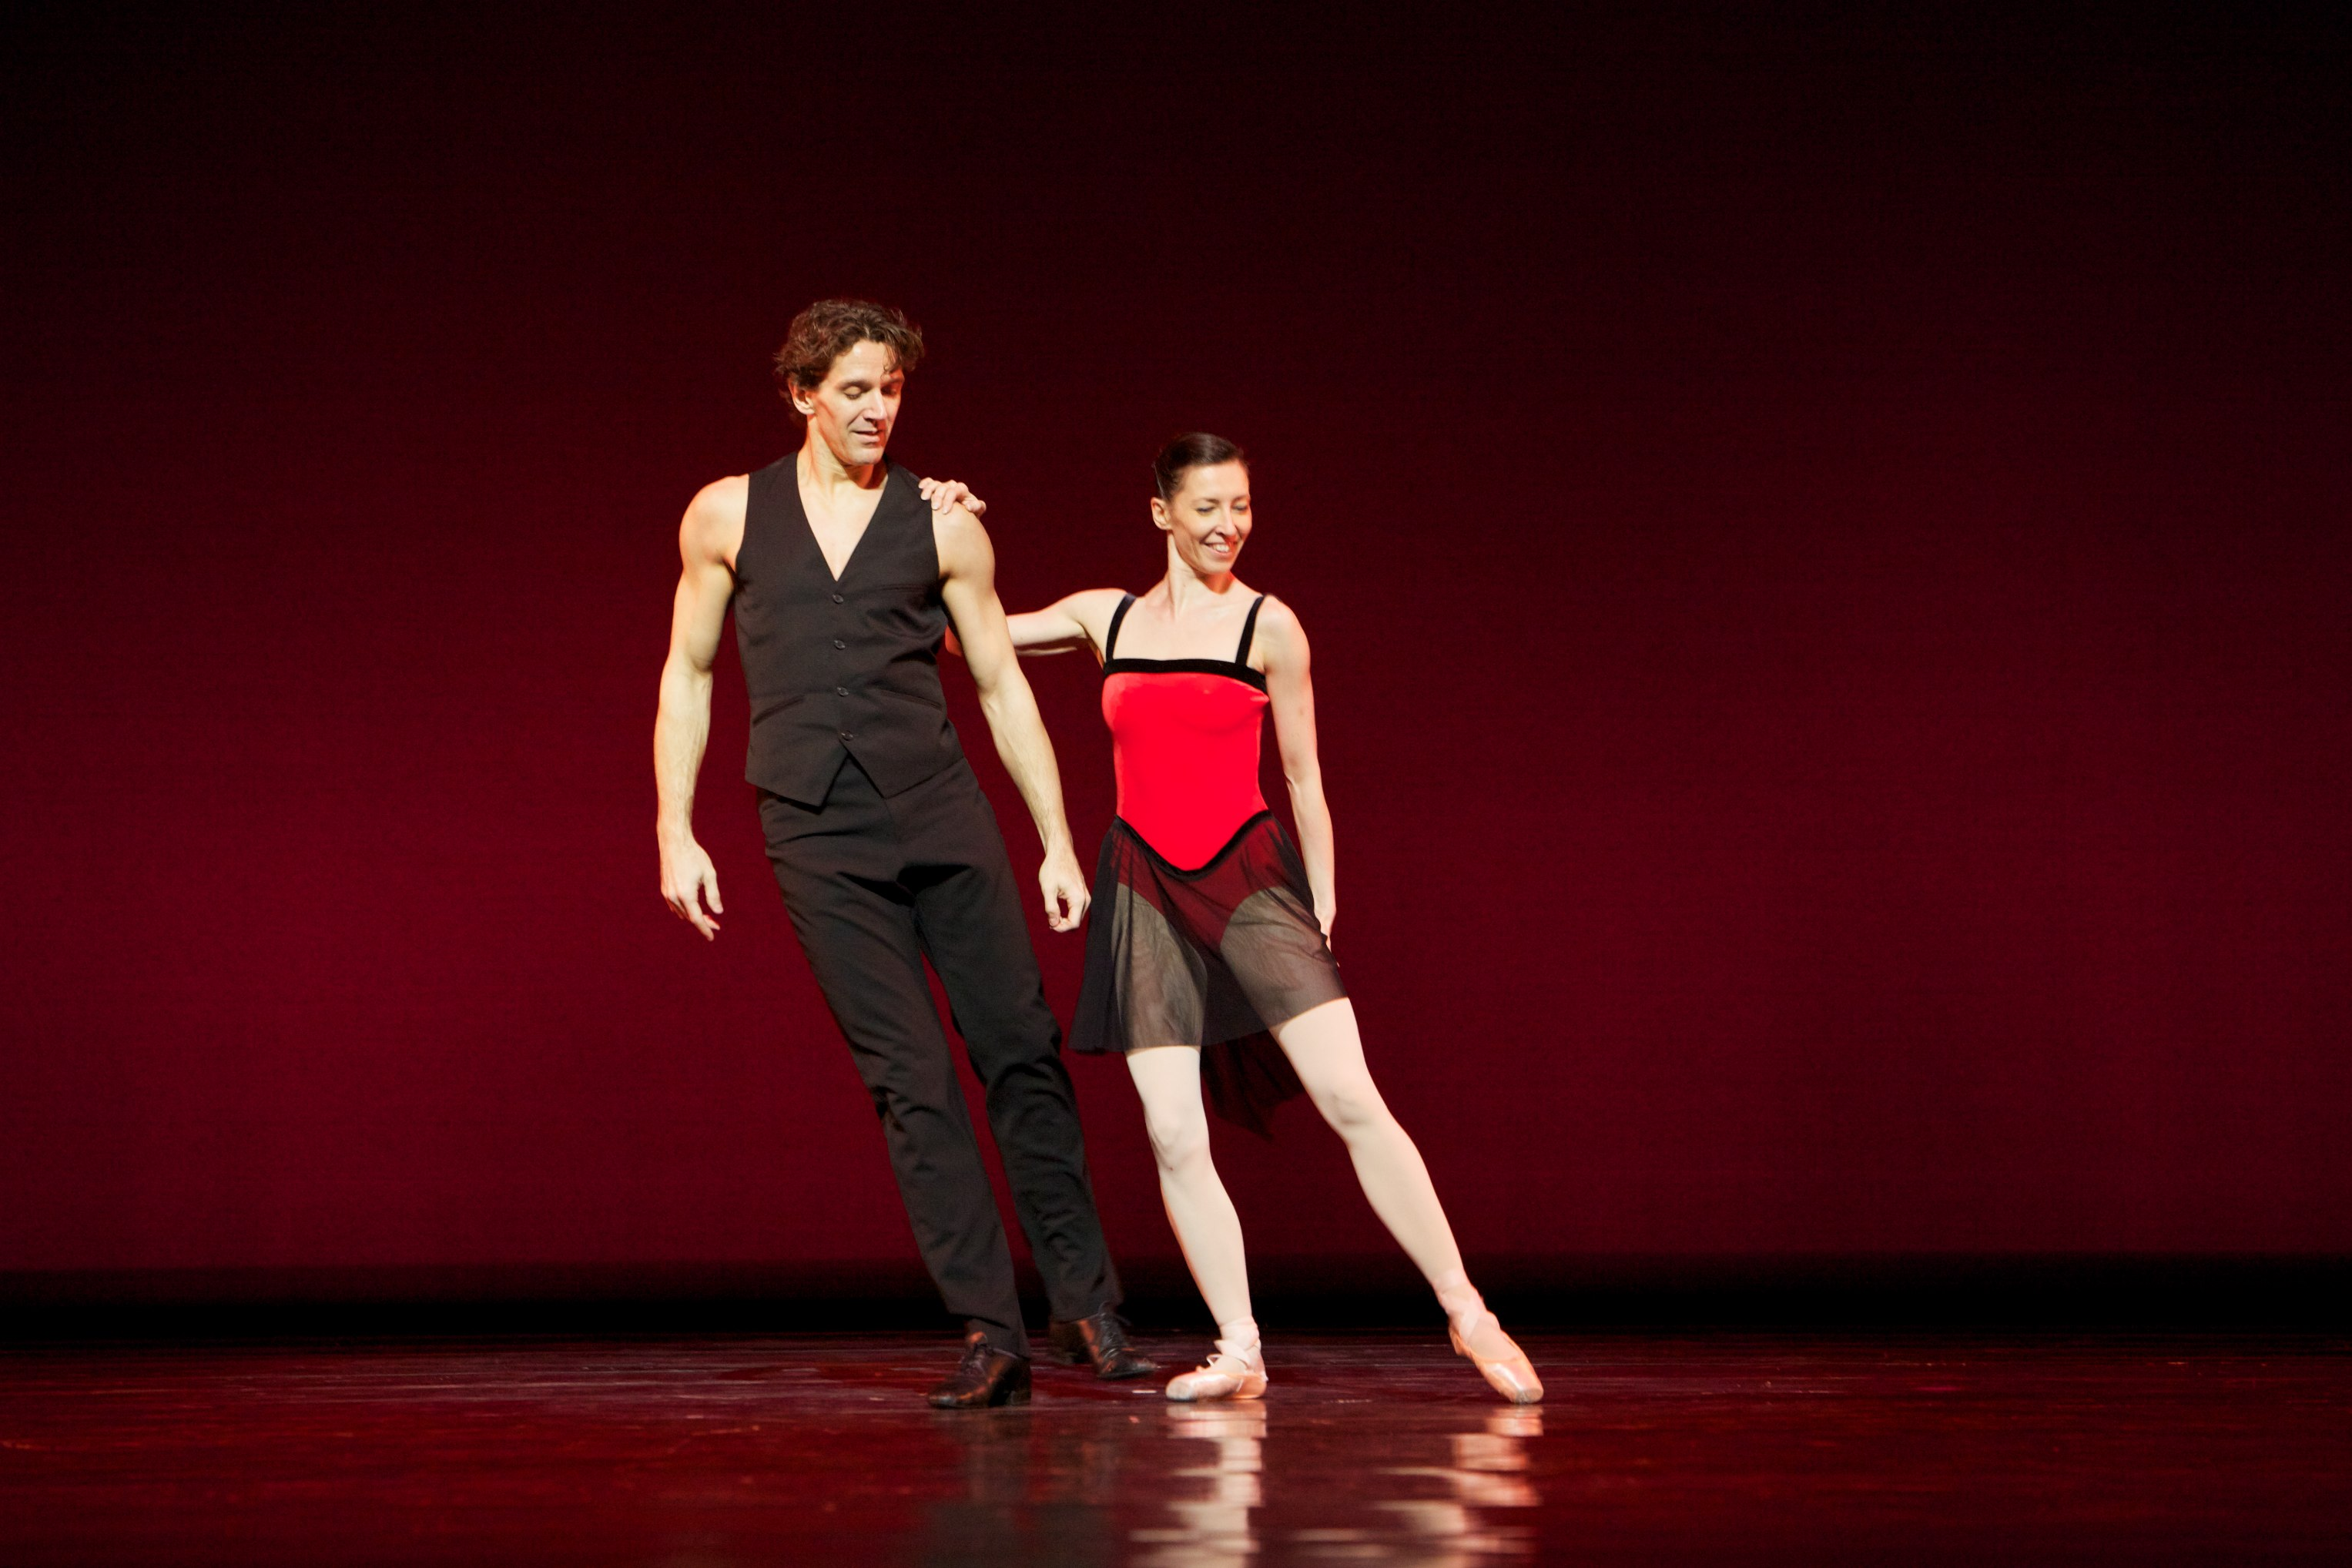 two dancers on stage in a ballet